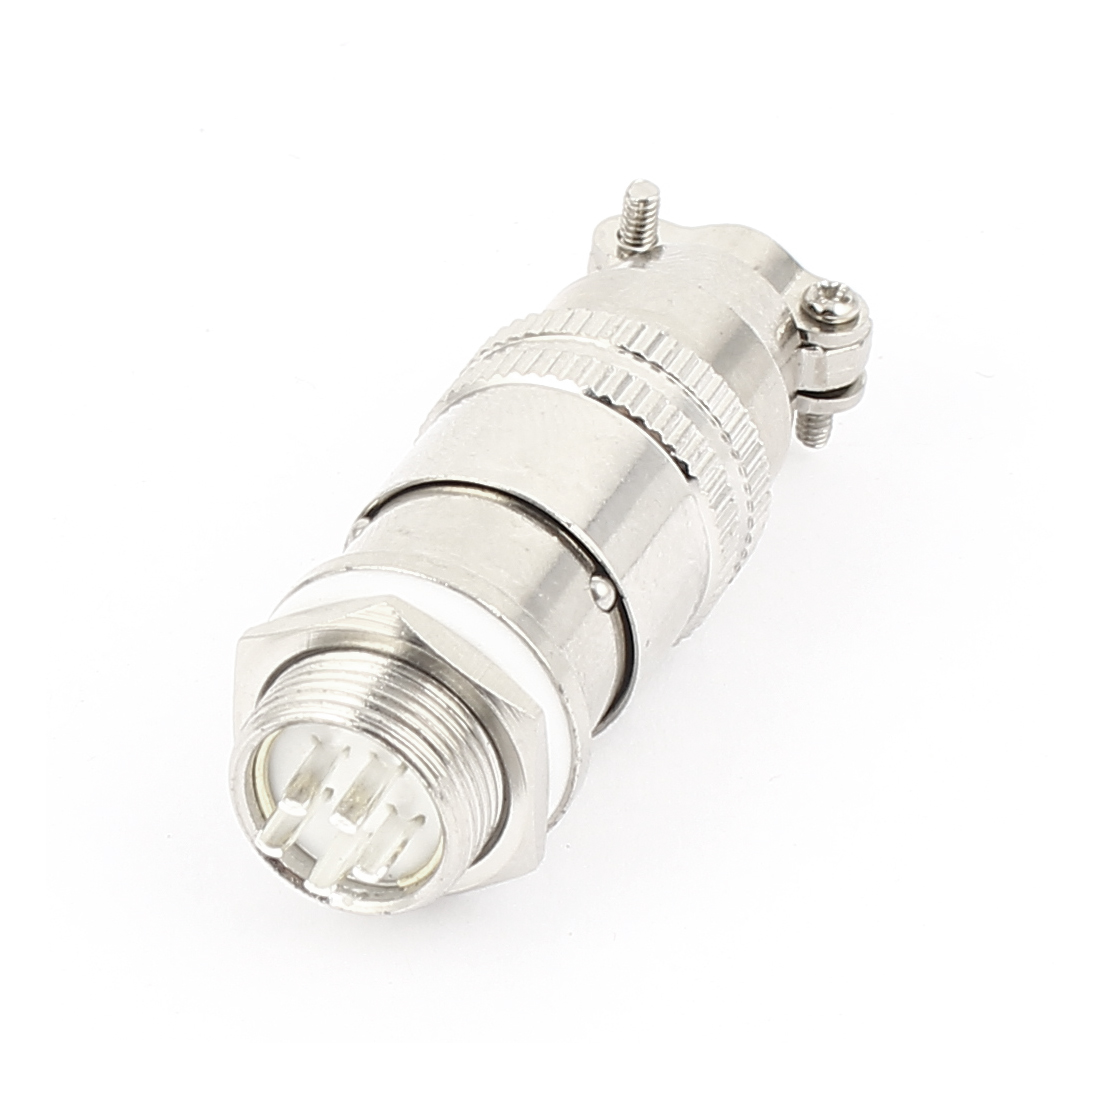 XS12-5 12mm Thread 5 Pin Push-Pull Aviation Connector Male Female